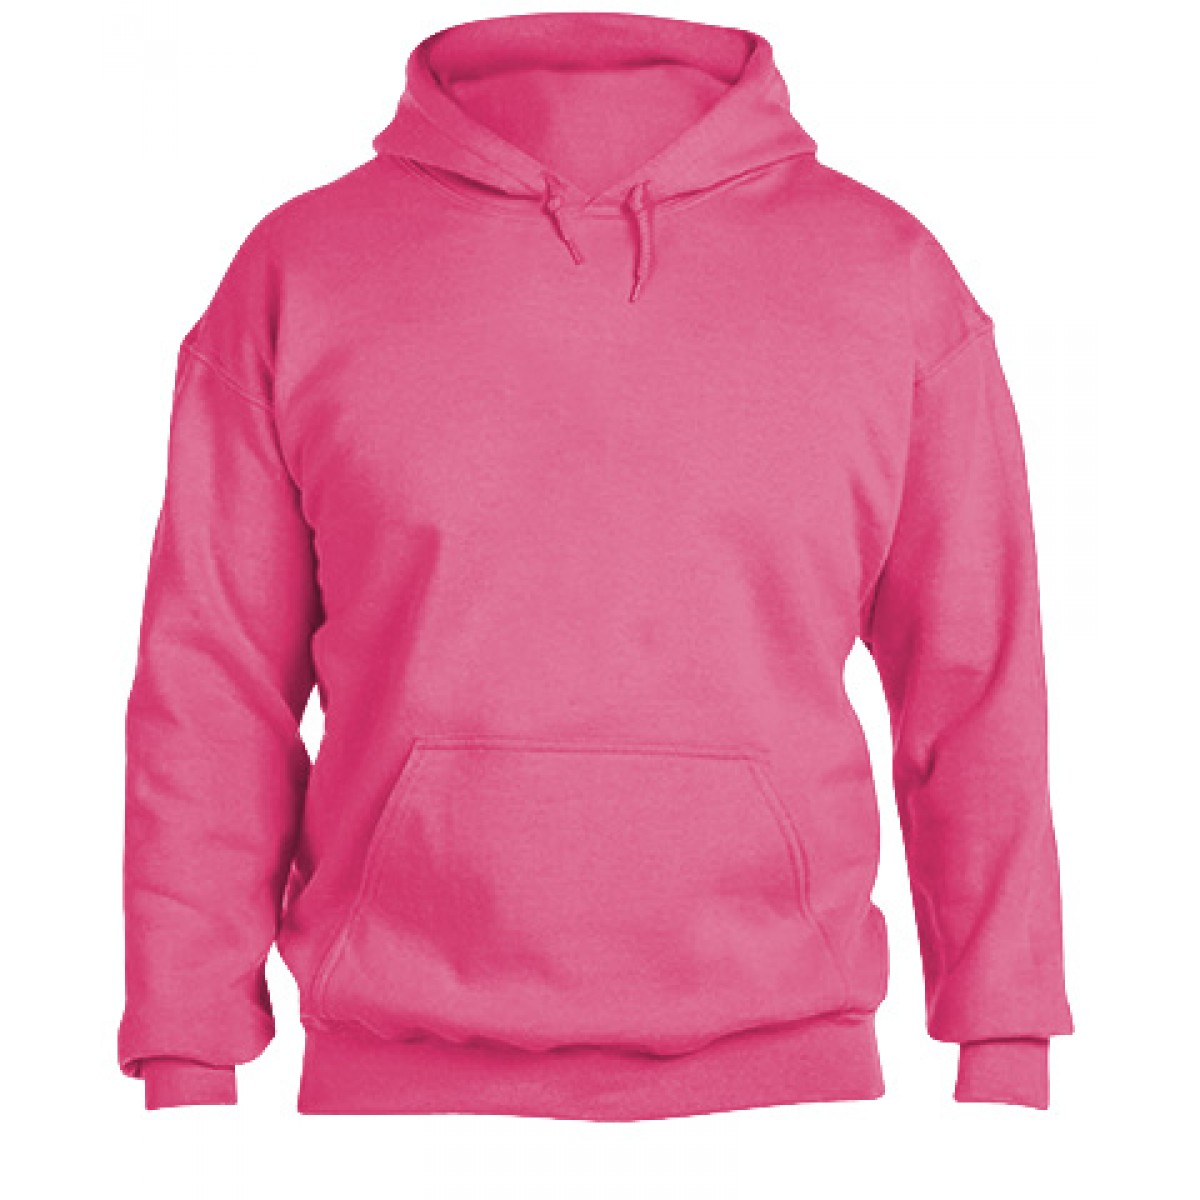 Hooded Sweatshirt 50/50 Heavy Safety Pink-Safety Pink-YM